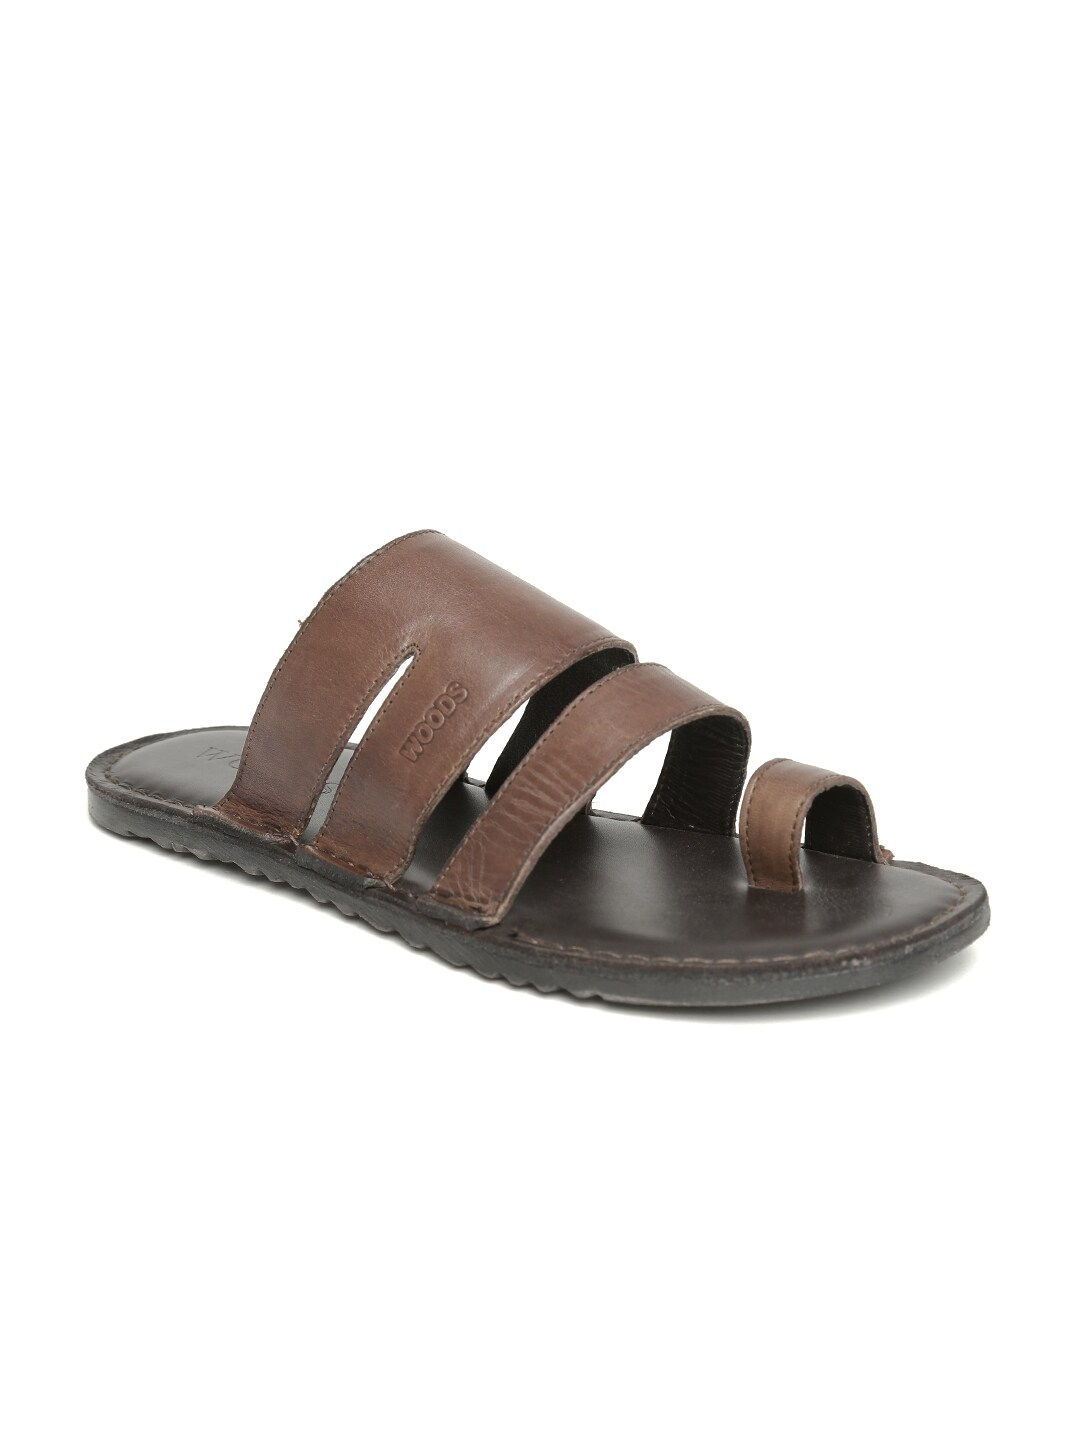 6d55fe44e2a Woodland wgp-1770115-brown Woods Men Brown Leather Sandals- Price in India